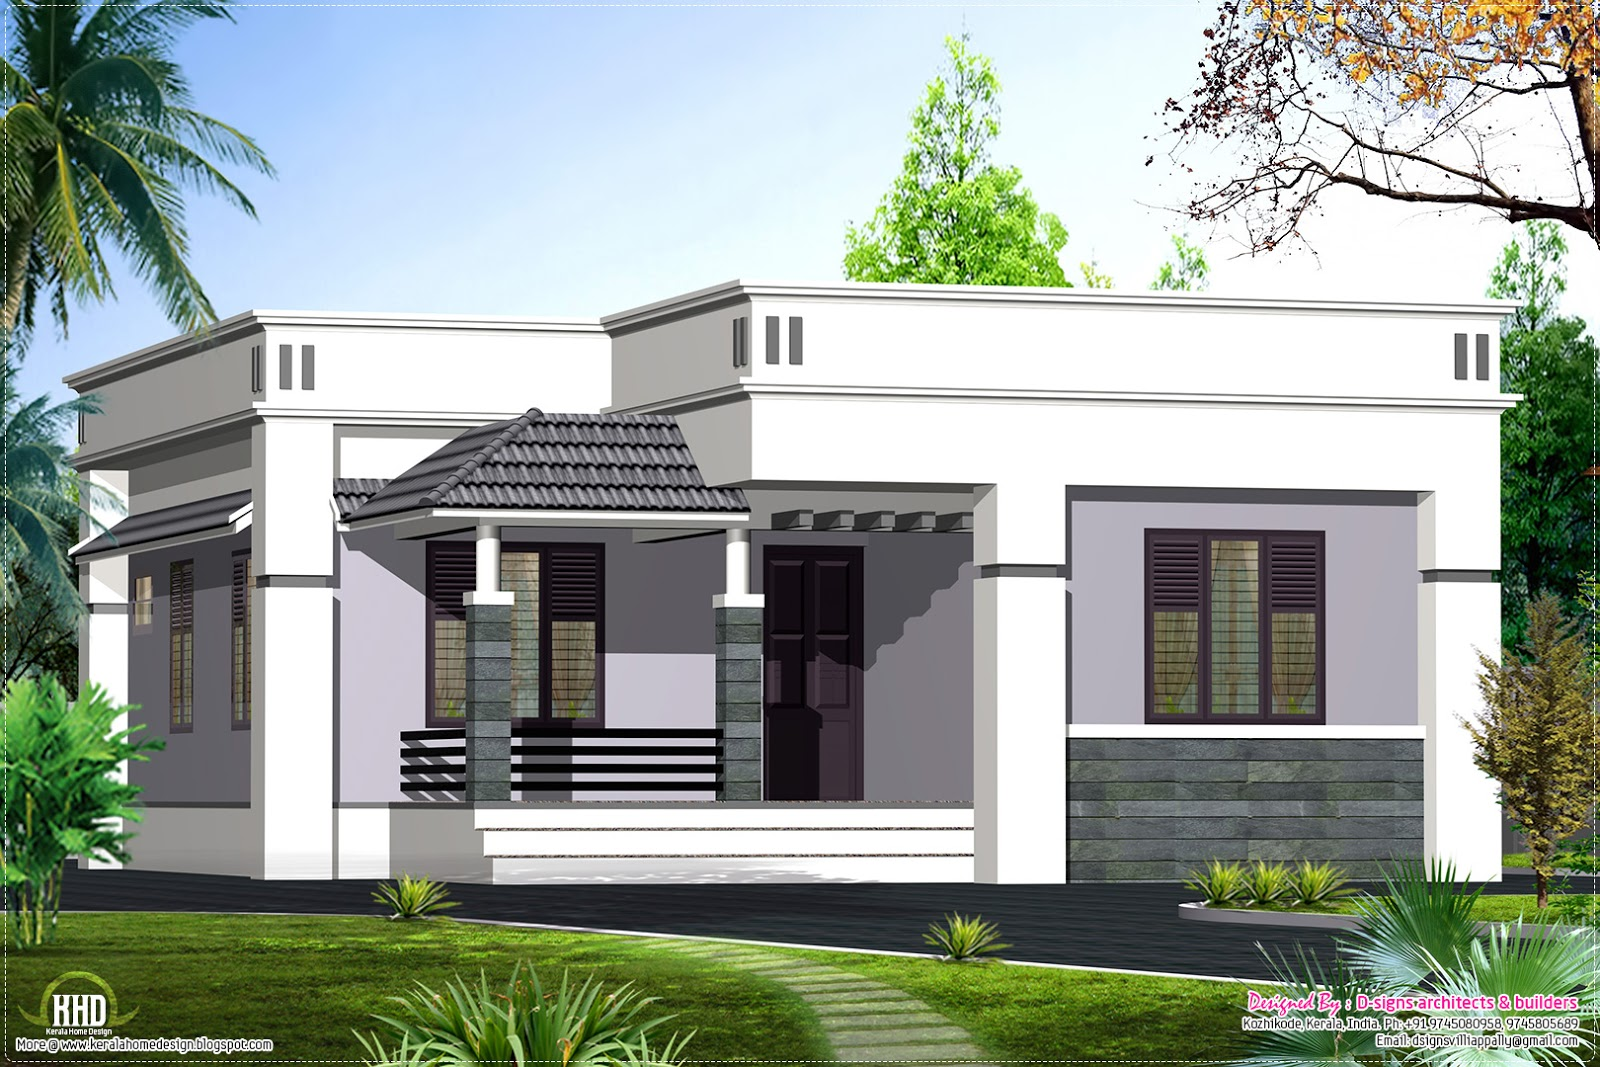 House Desings Cool 35 Small And Simple But Beautiful House With Roof Deck Design Ideas